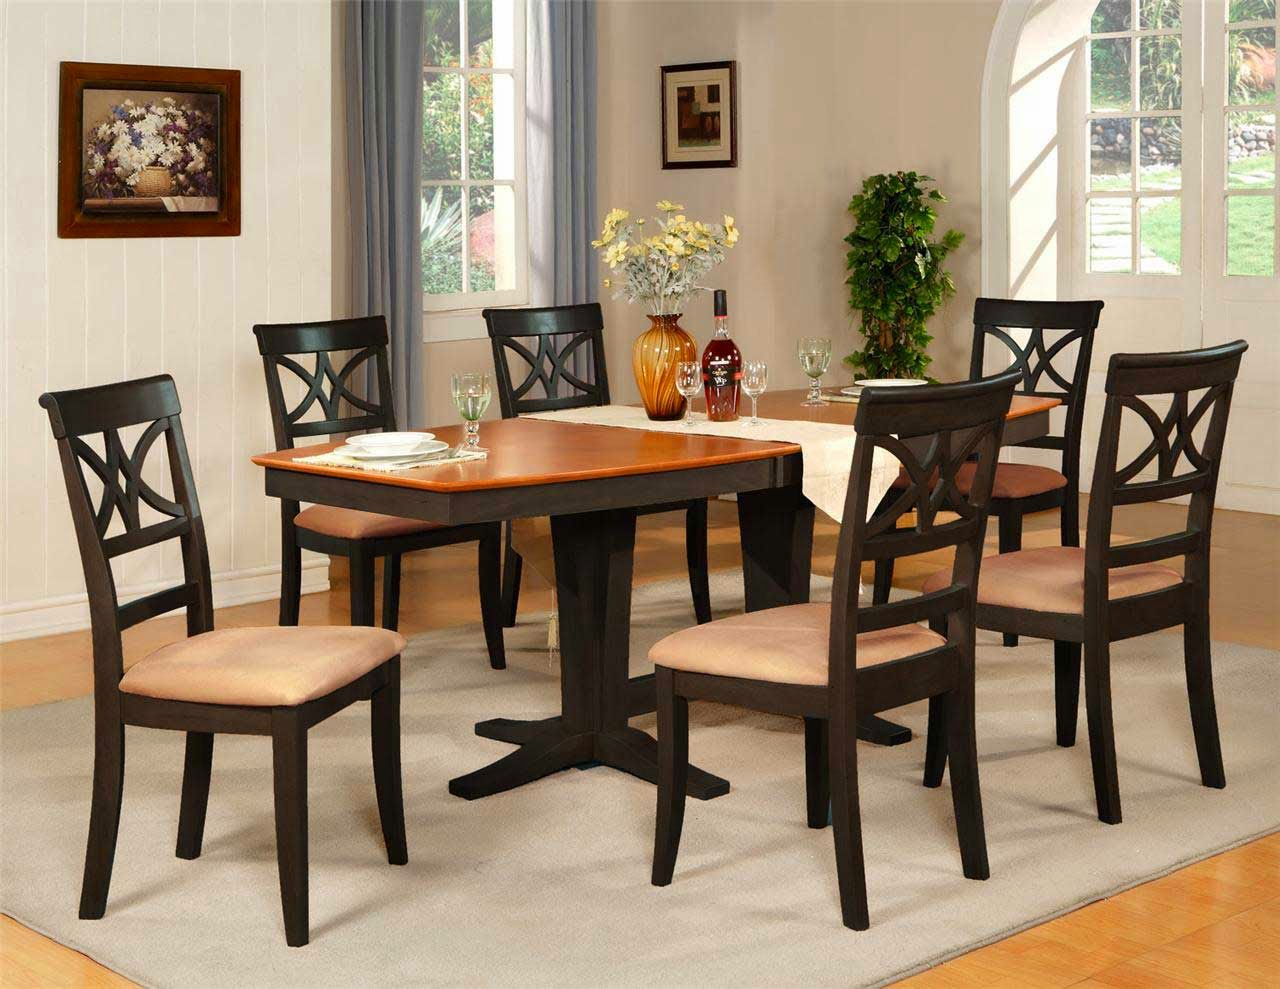 Dining room table centerpiece ideas for Dinette table decorations